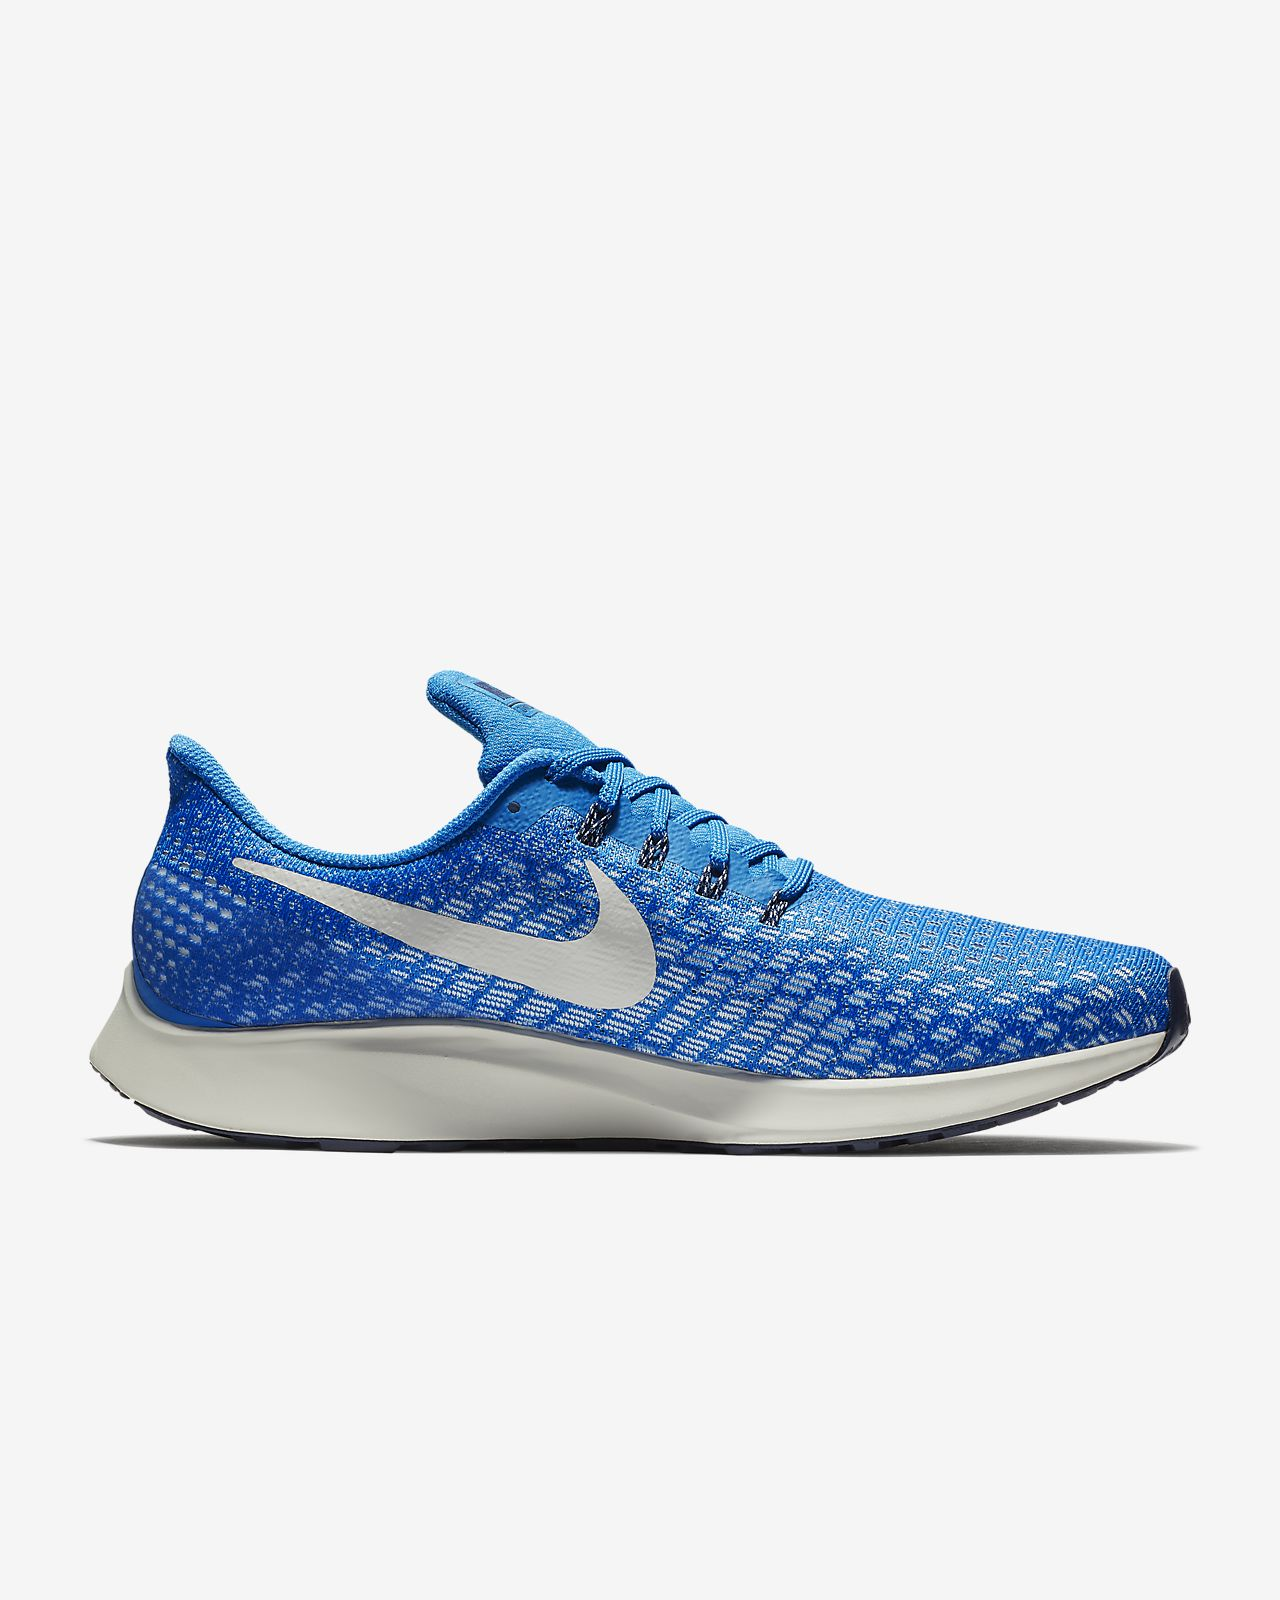 2660da5d0 Nike Air Zoom Pegasus 35 Men's Running Shoe. Nike.com